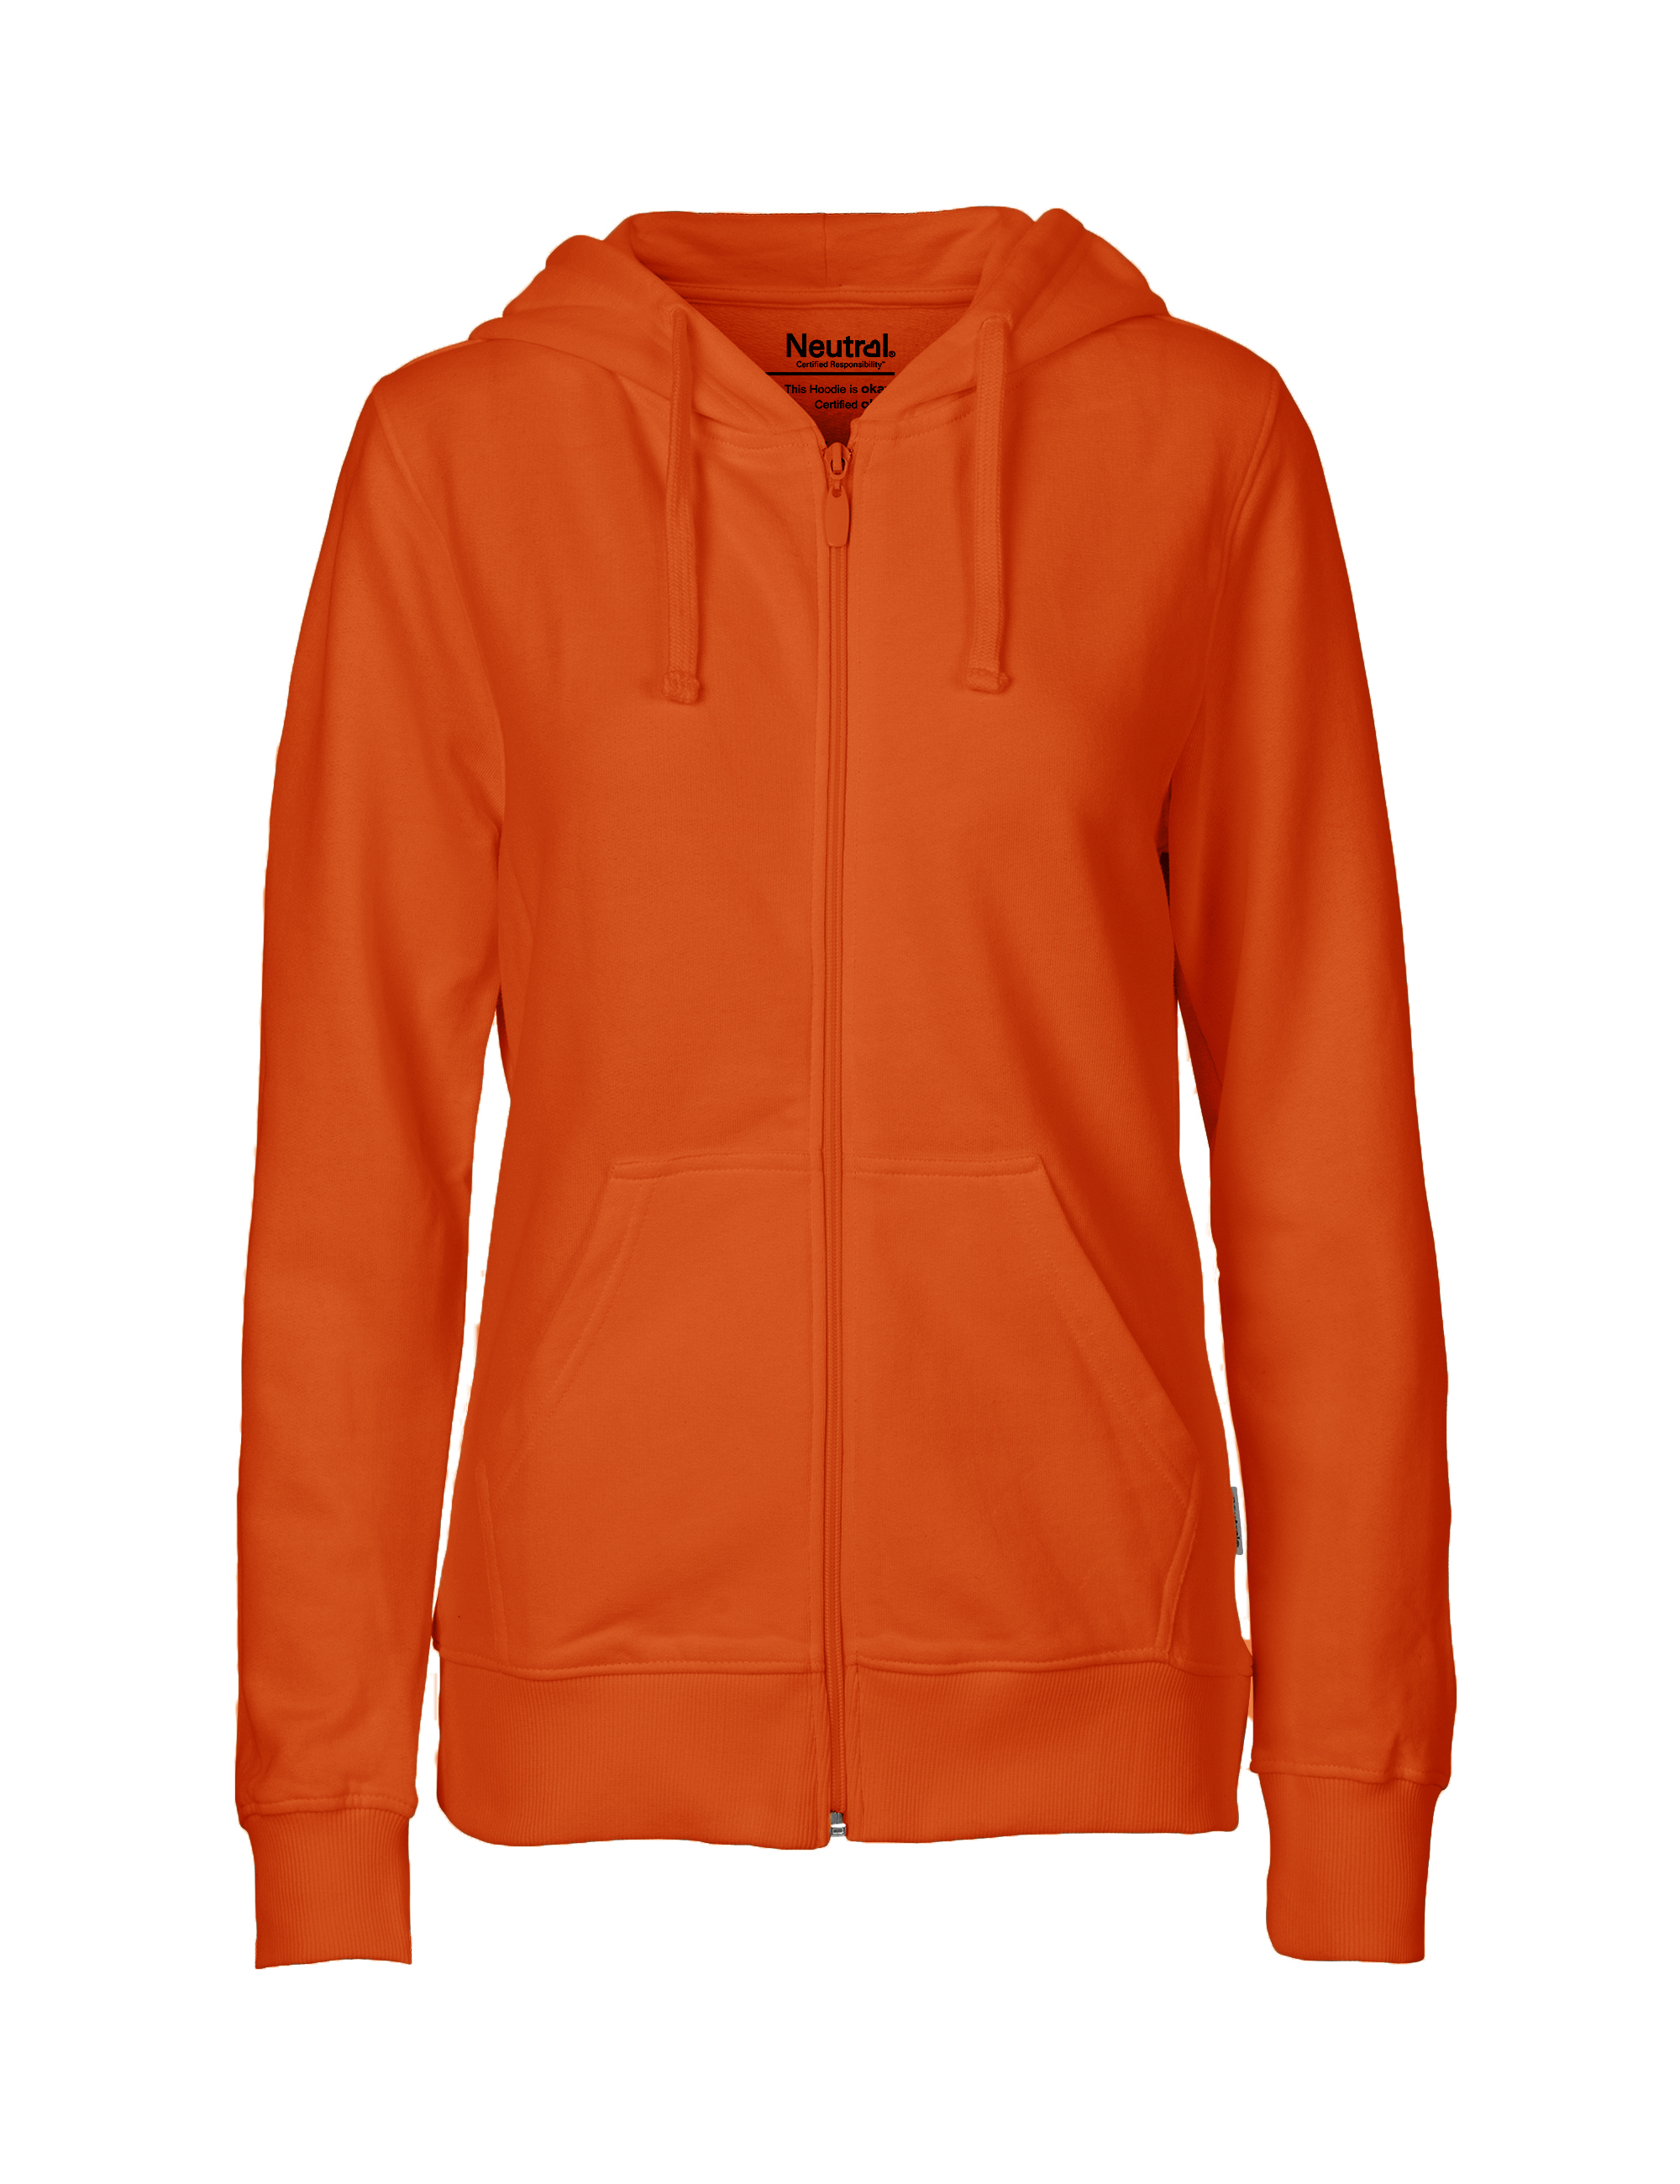 O83301 Ladies Hoodie w. Zip i Orange